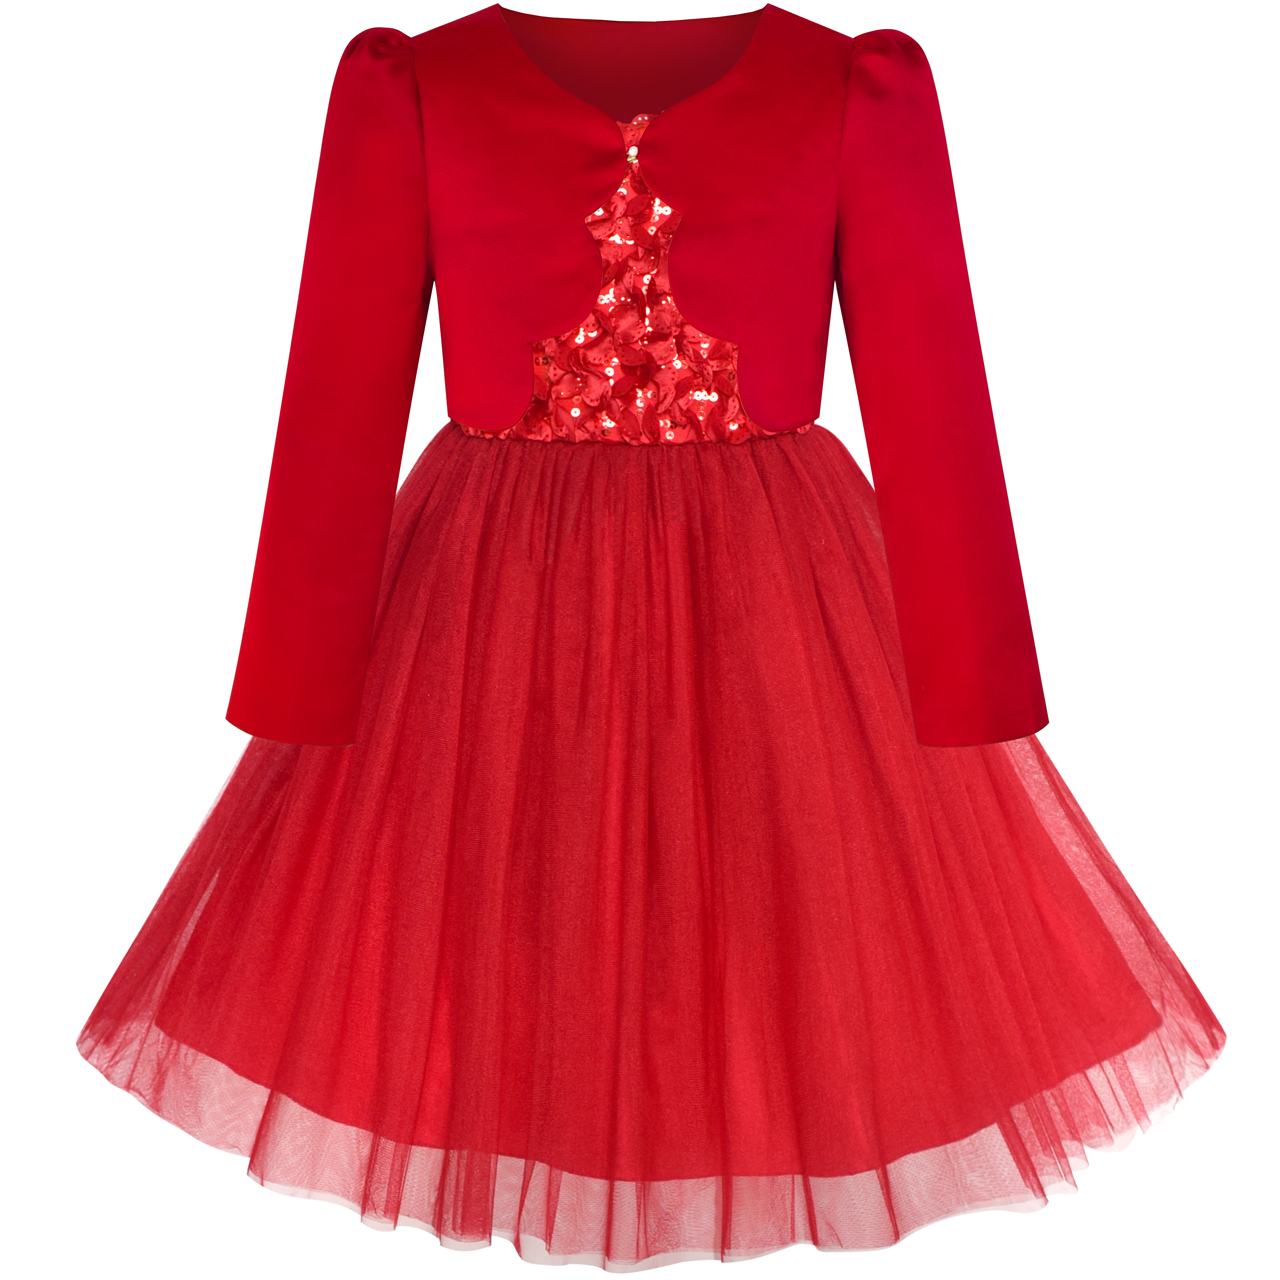 Princess Costumes Birthday Party Dress Up for Little Girls//Long Sleeve with Cape Age of 2-11 Years